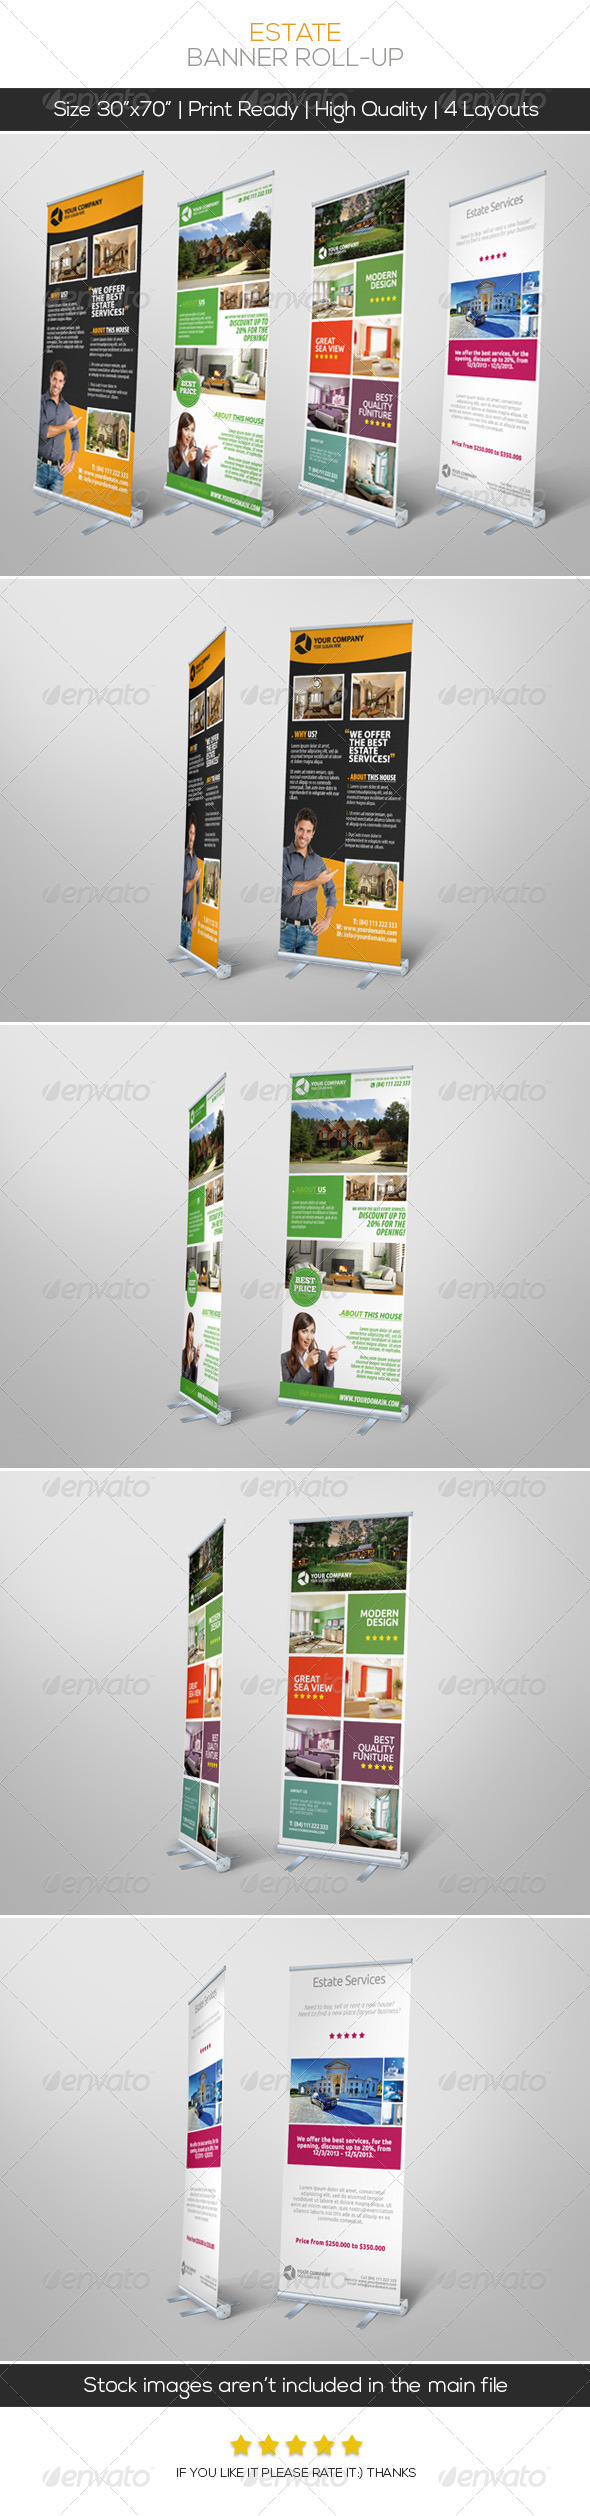 Premium Estate Banner Roll-up - Signage Print Templates